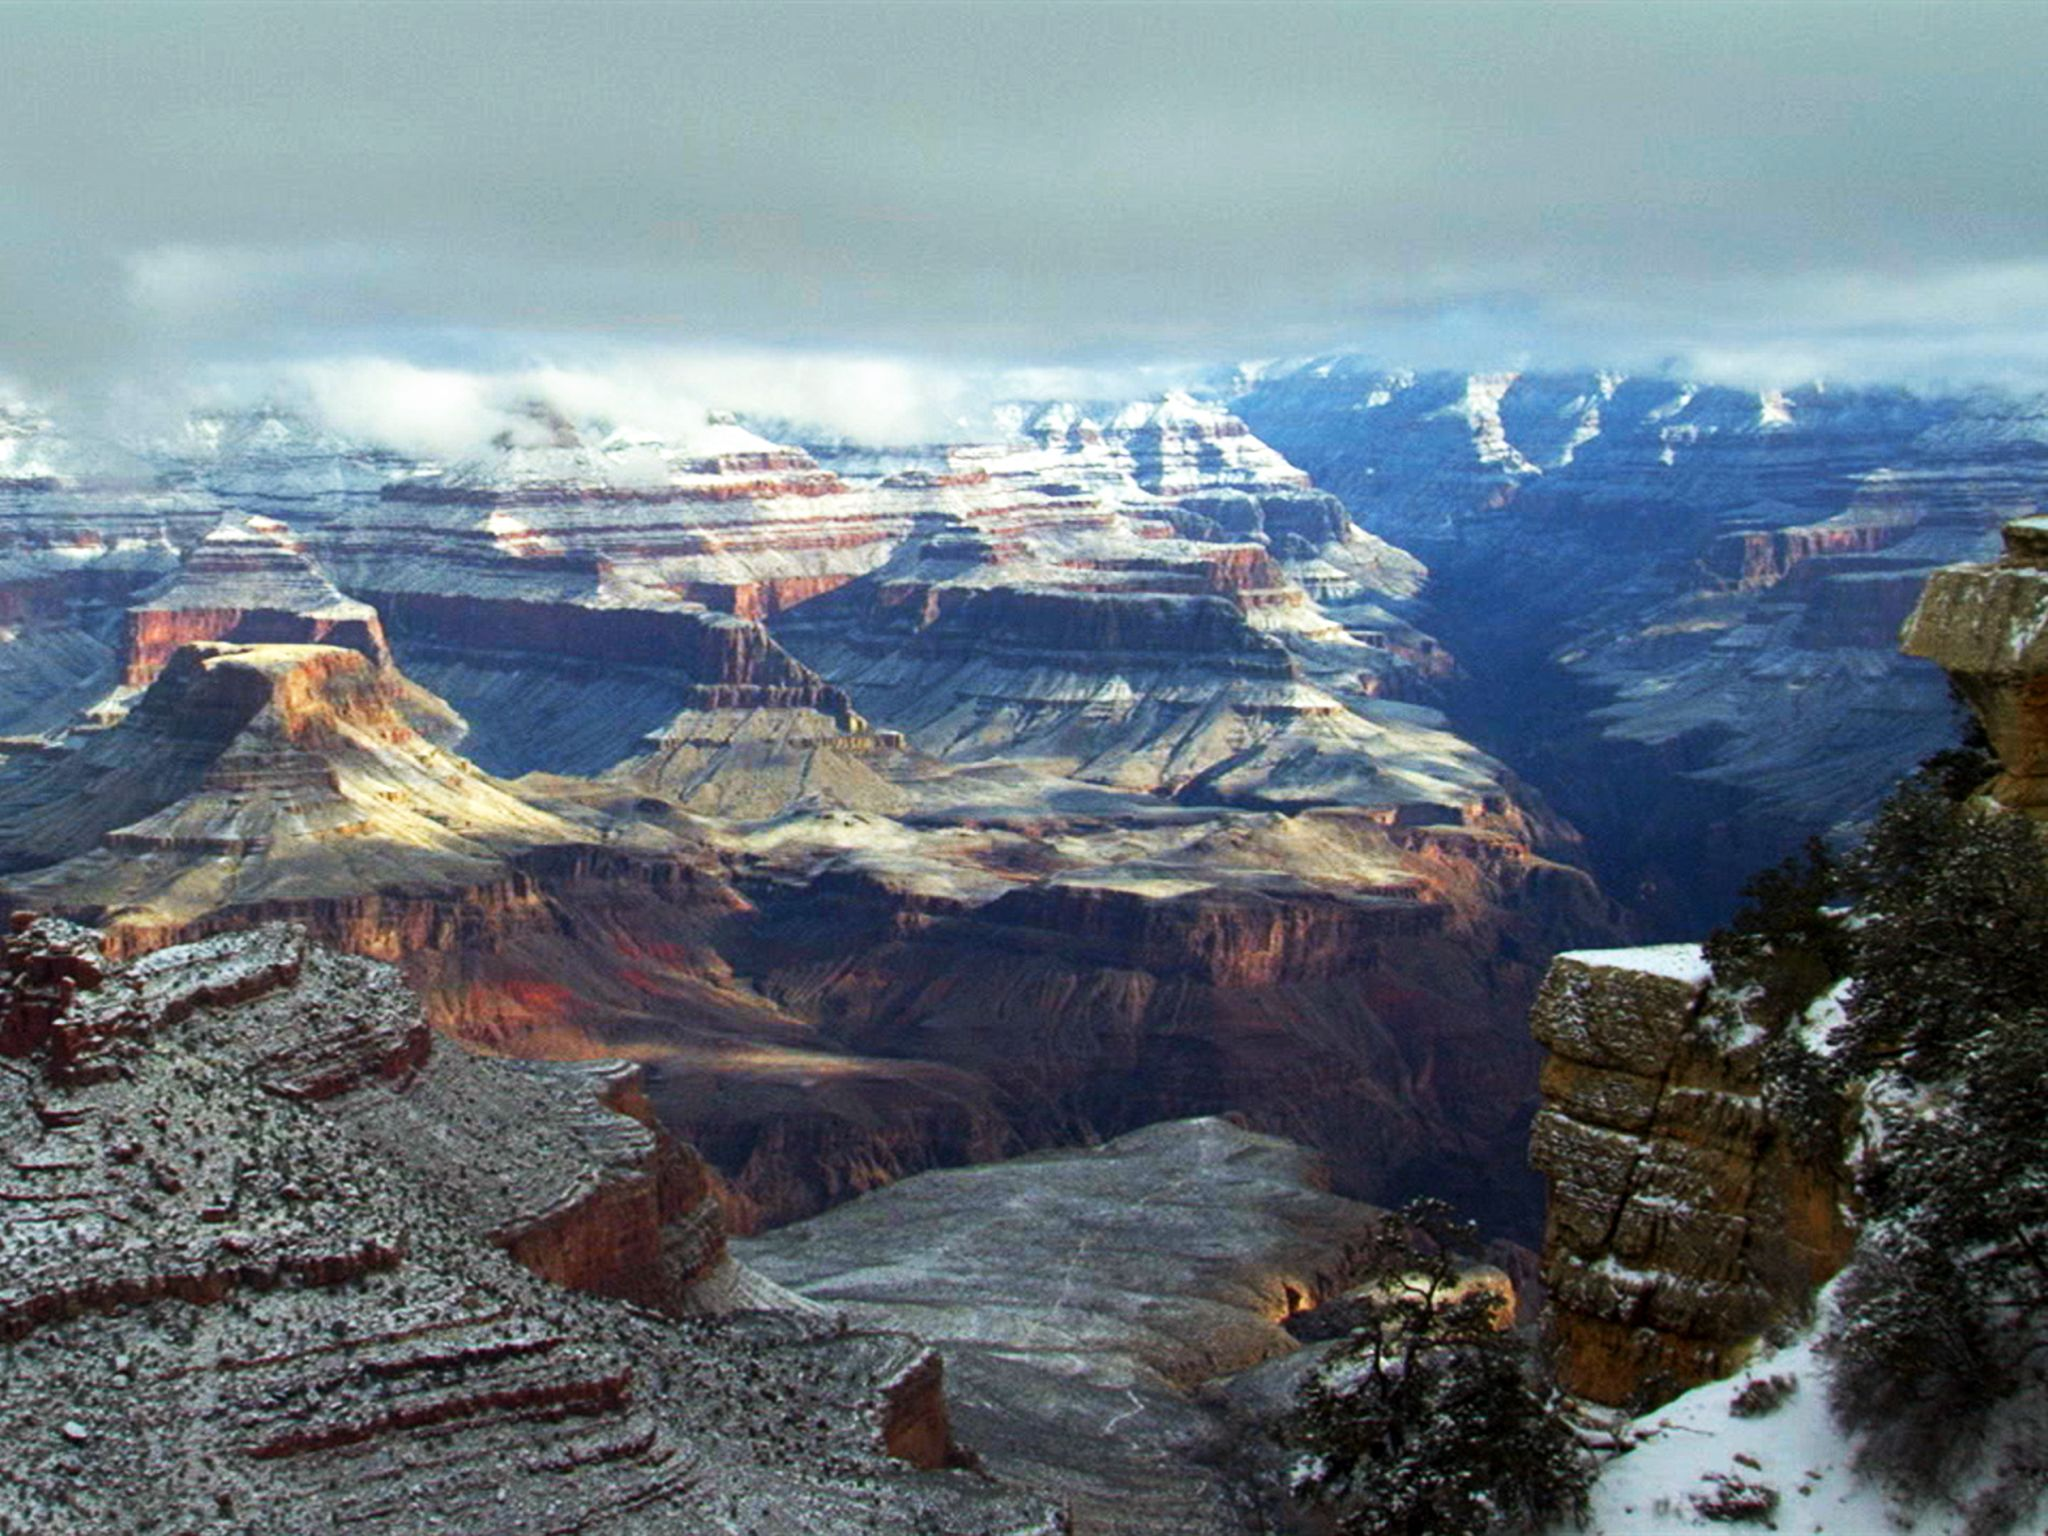 Grand Canyon National Park, Ariz.: Winter is a peaceful time in the Grand Canyon National Park.... [Photo of the day - فبراير 2016]